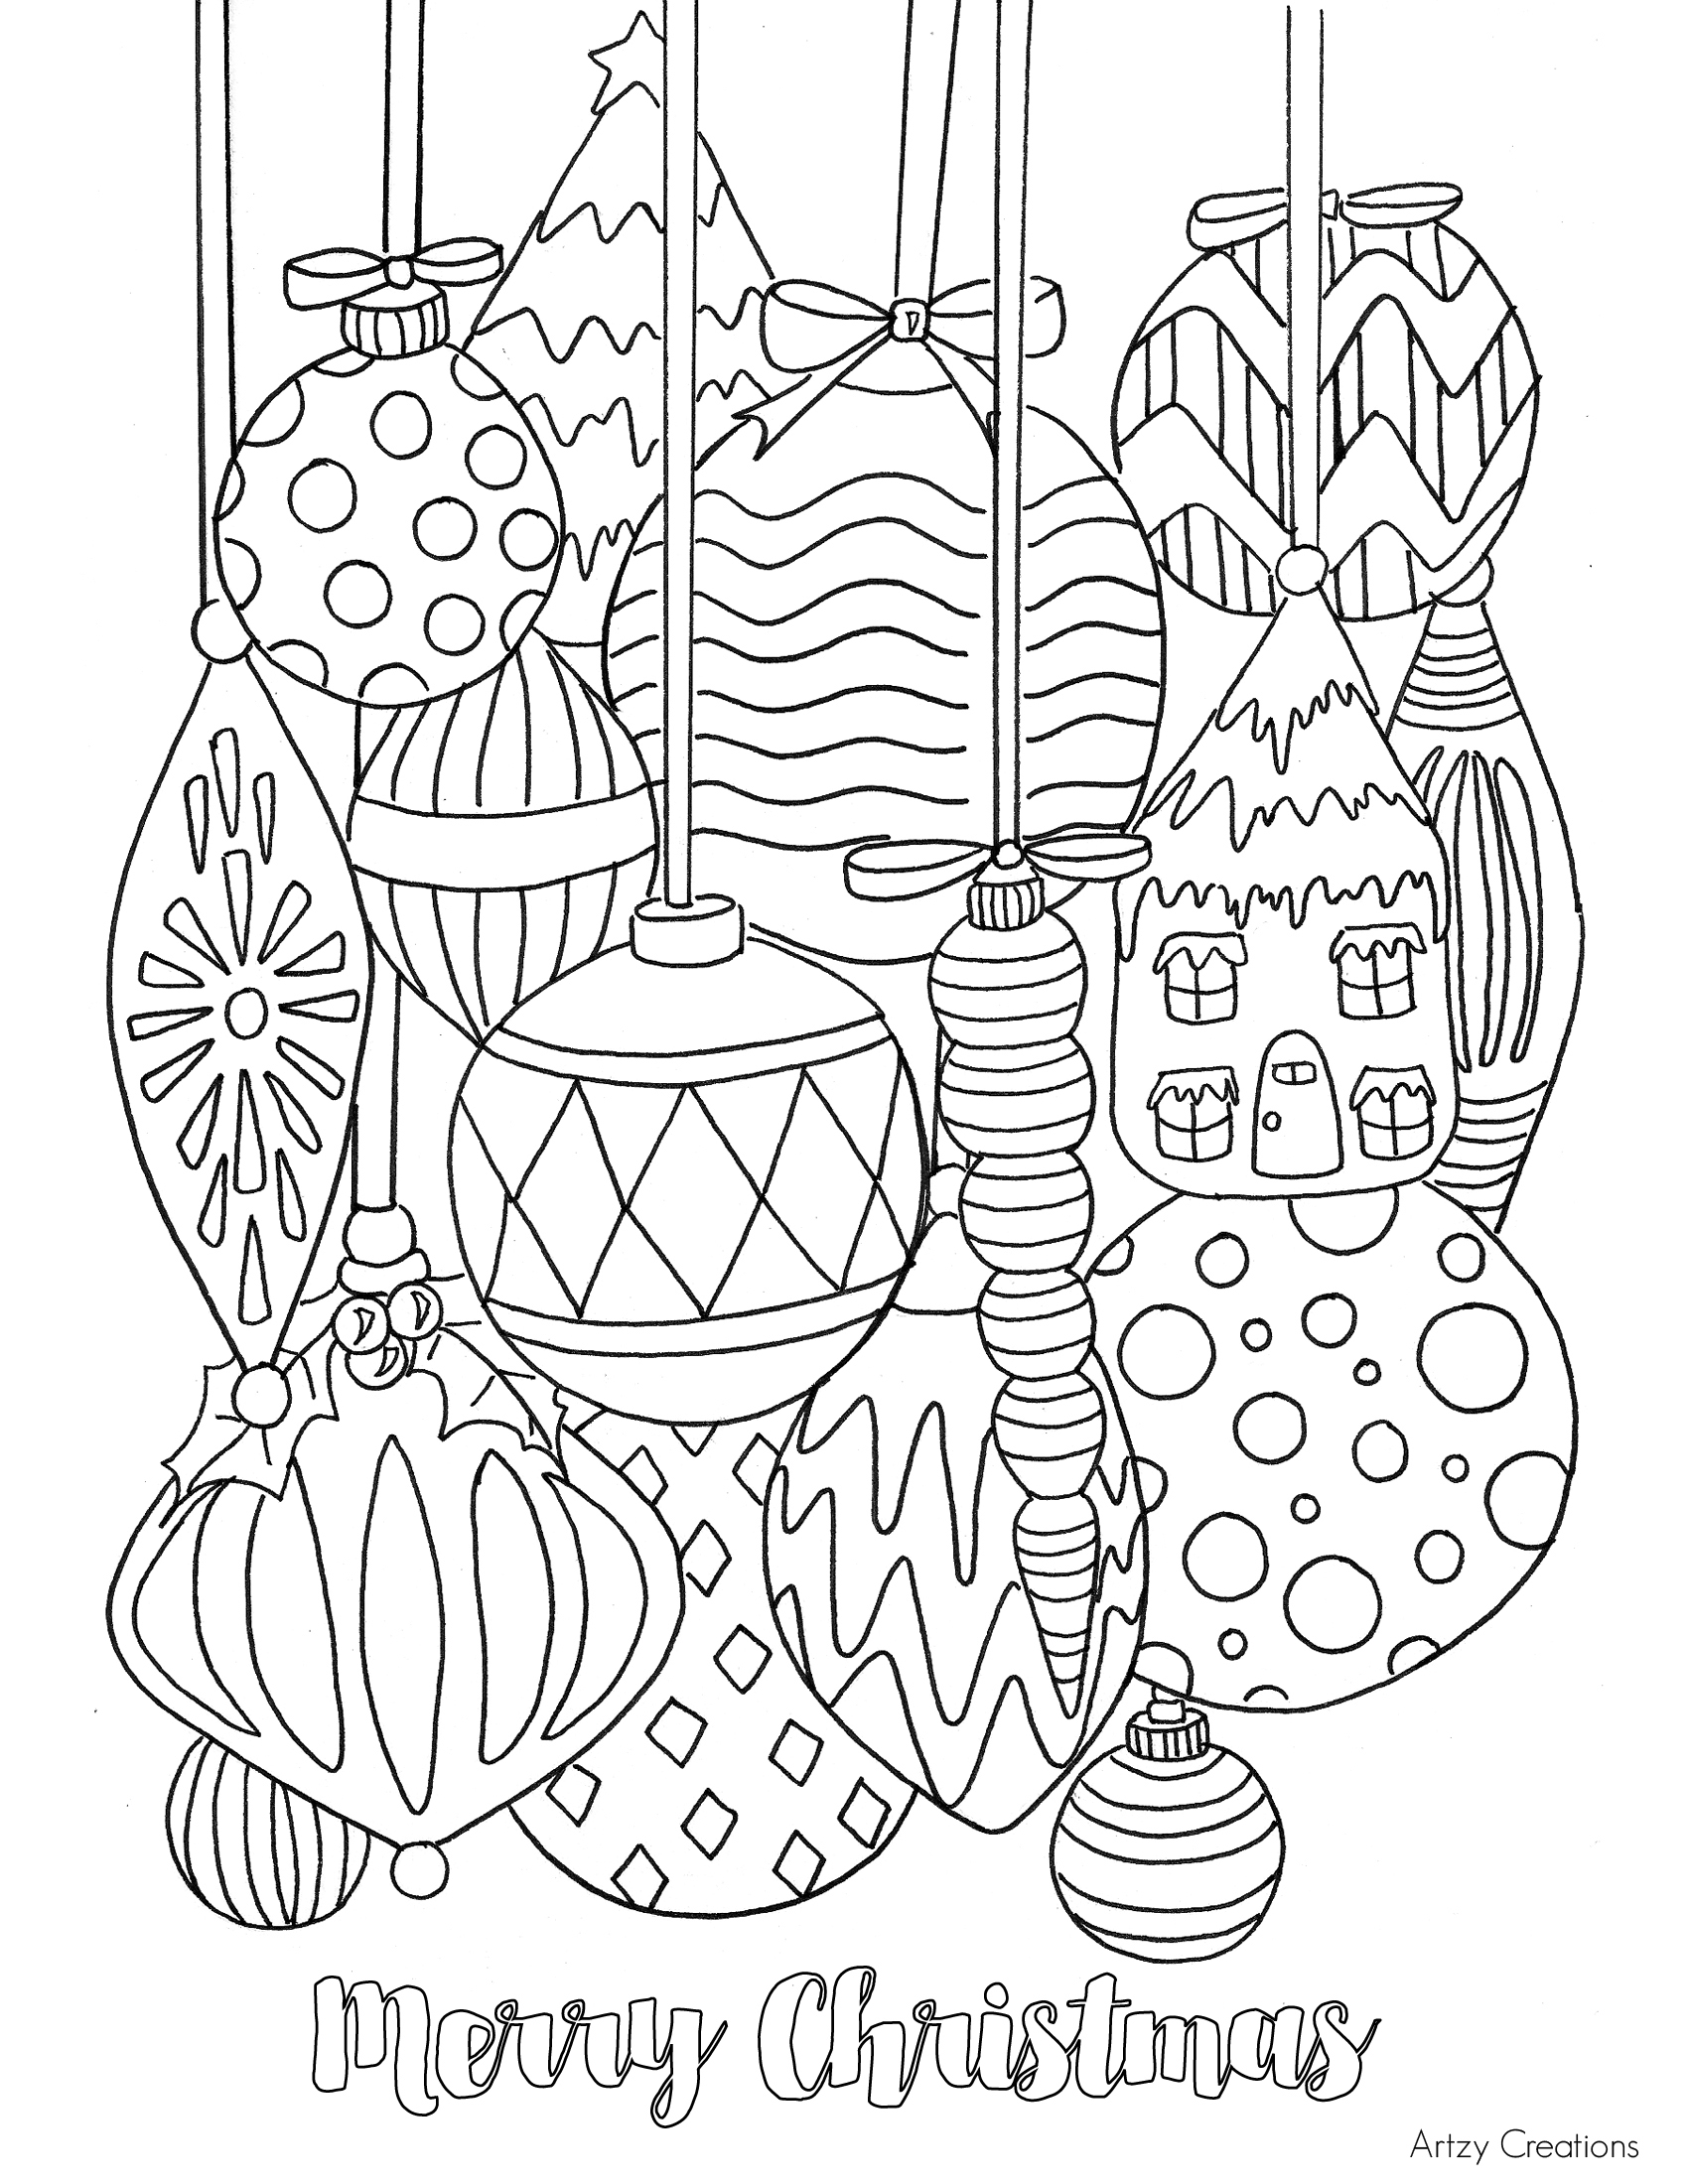 Christmas Coloring Tags With Page To Print Printable For Kids